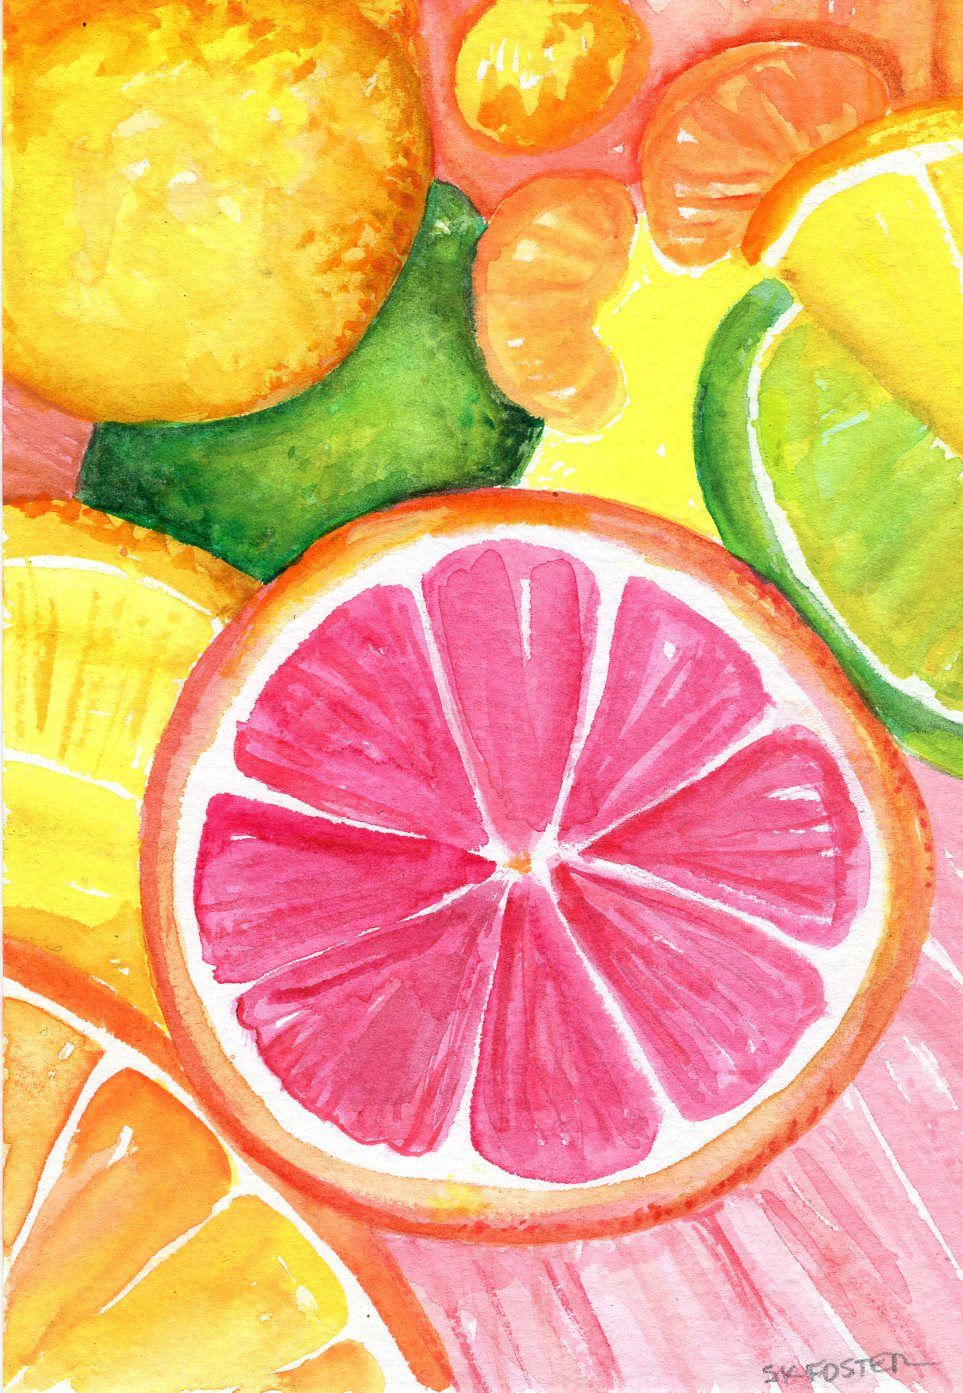 Original Citrus Watercolor Painting Grapefruit Lemon Orange